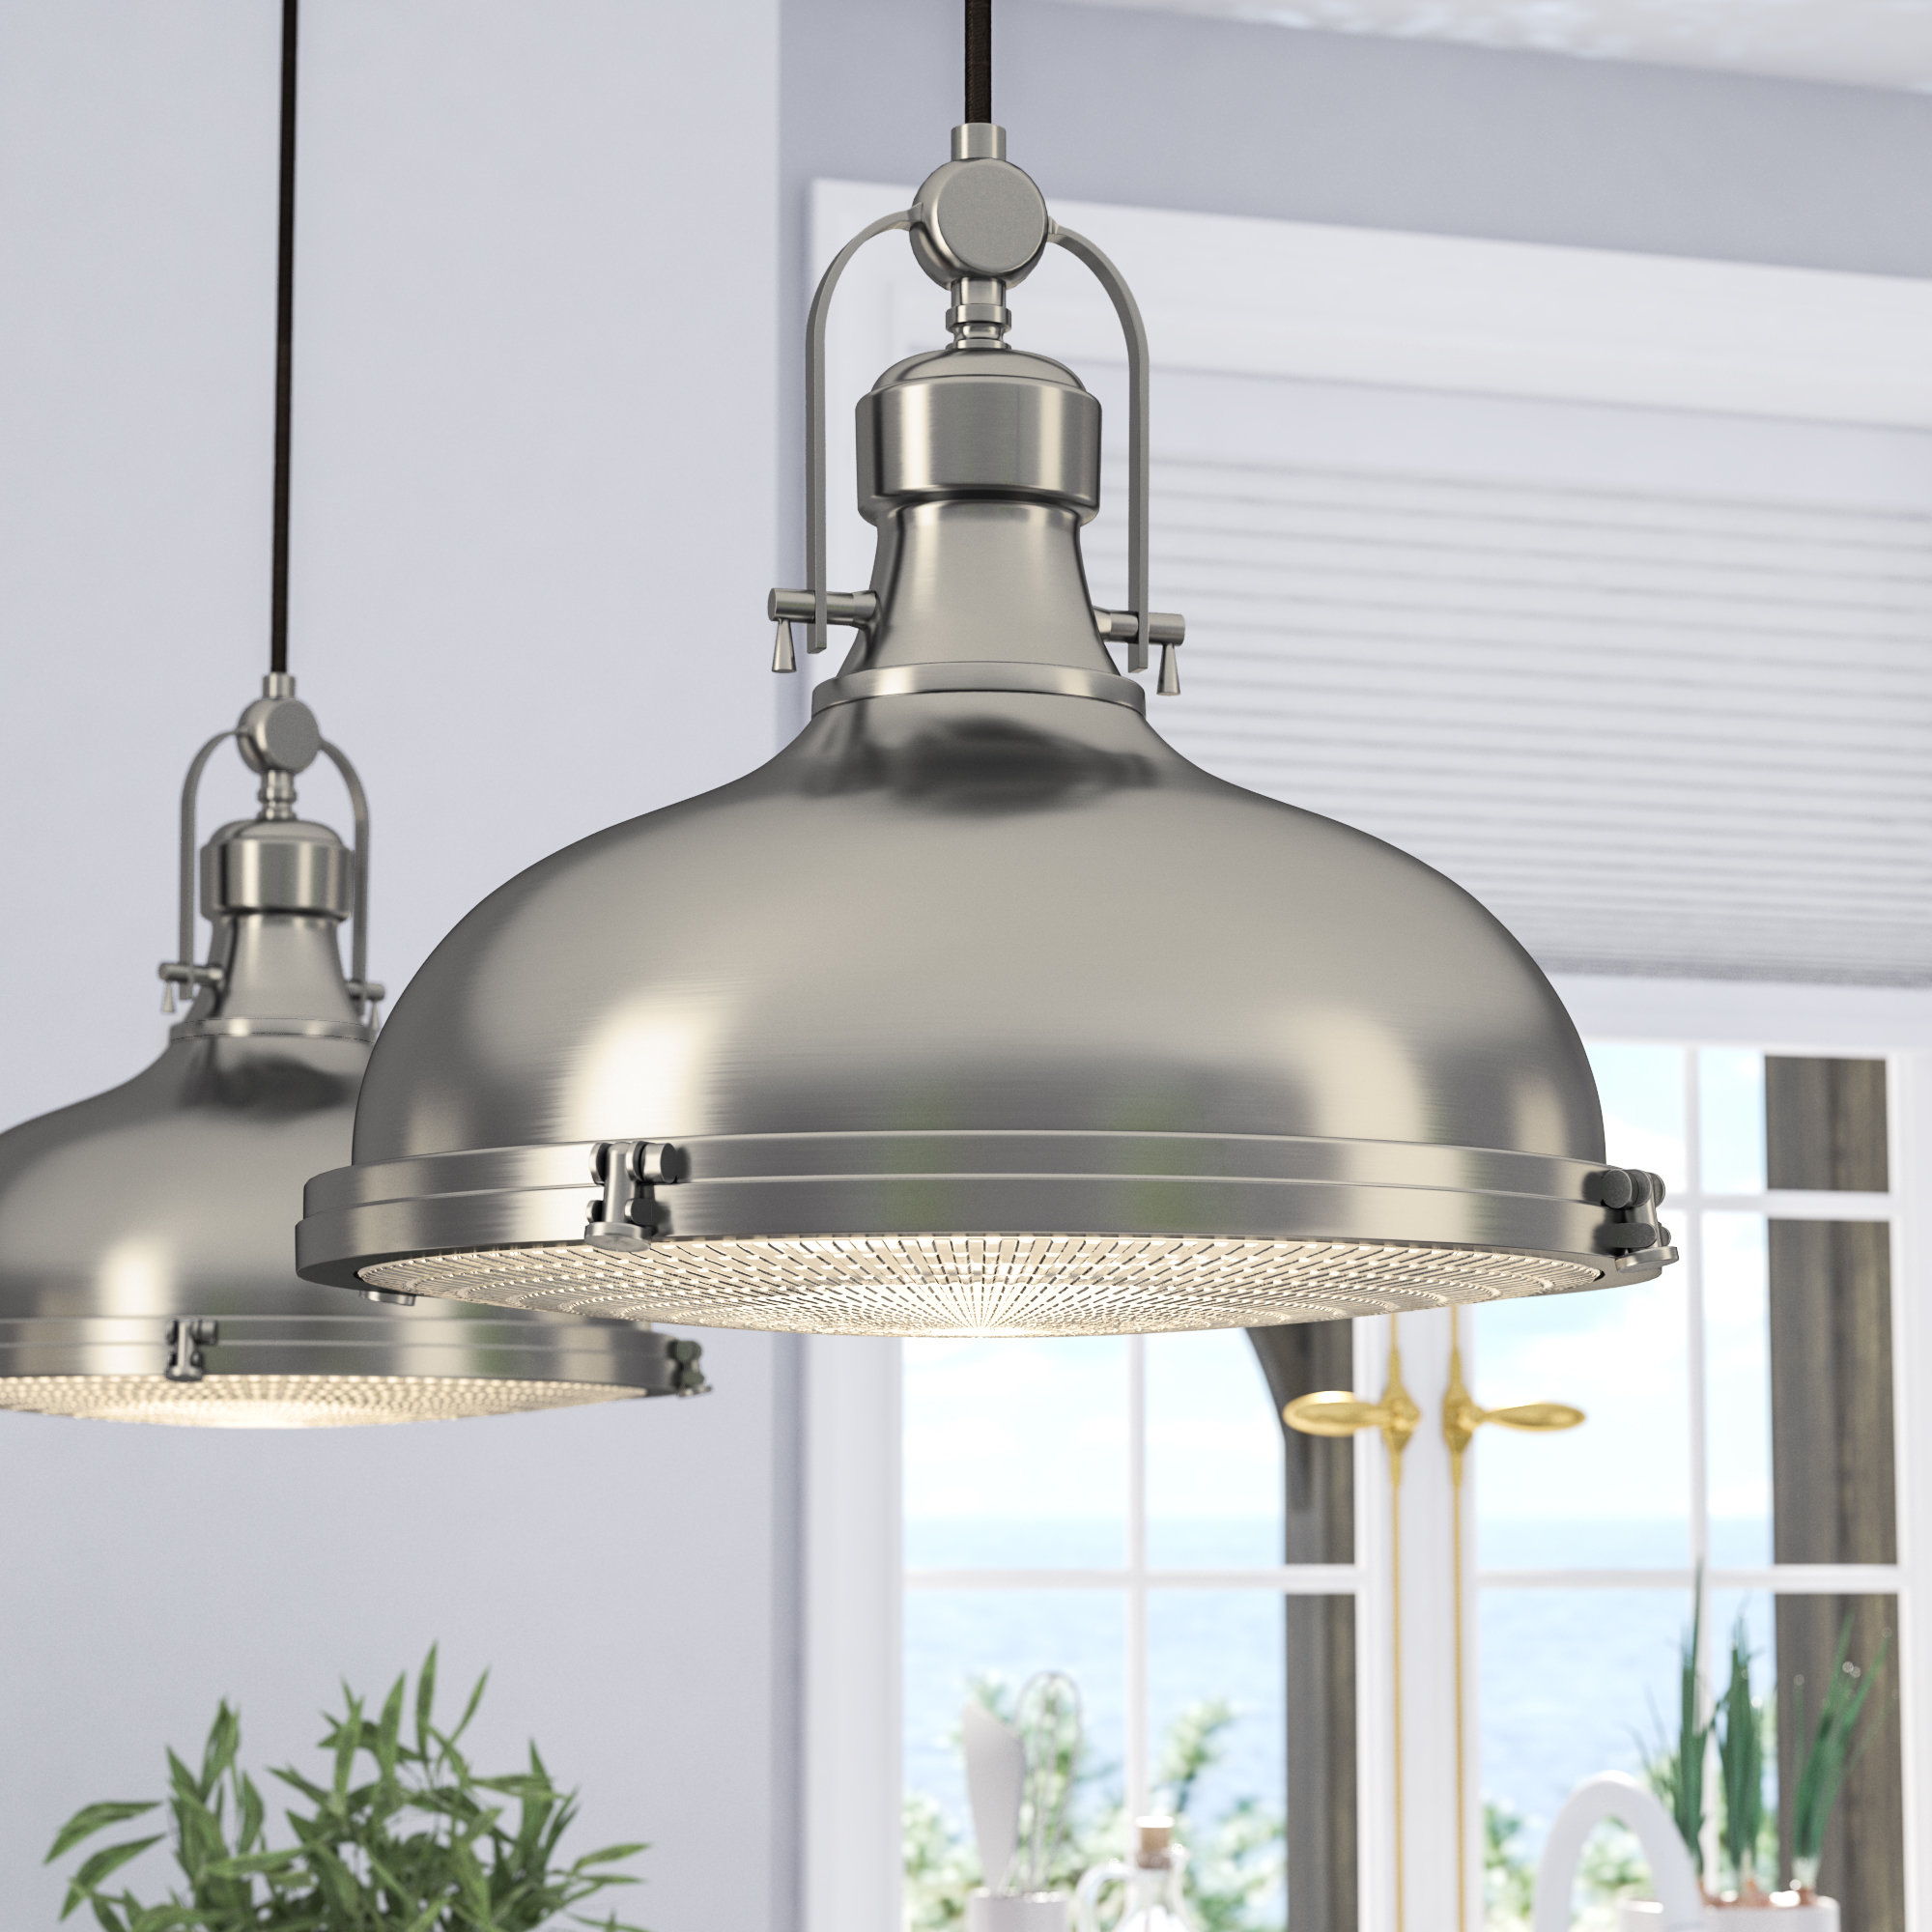 2019 Dome Metal Pendant Lighting You'll Love In  (View 14 of 25)